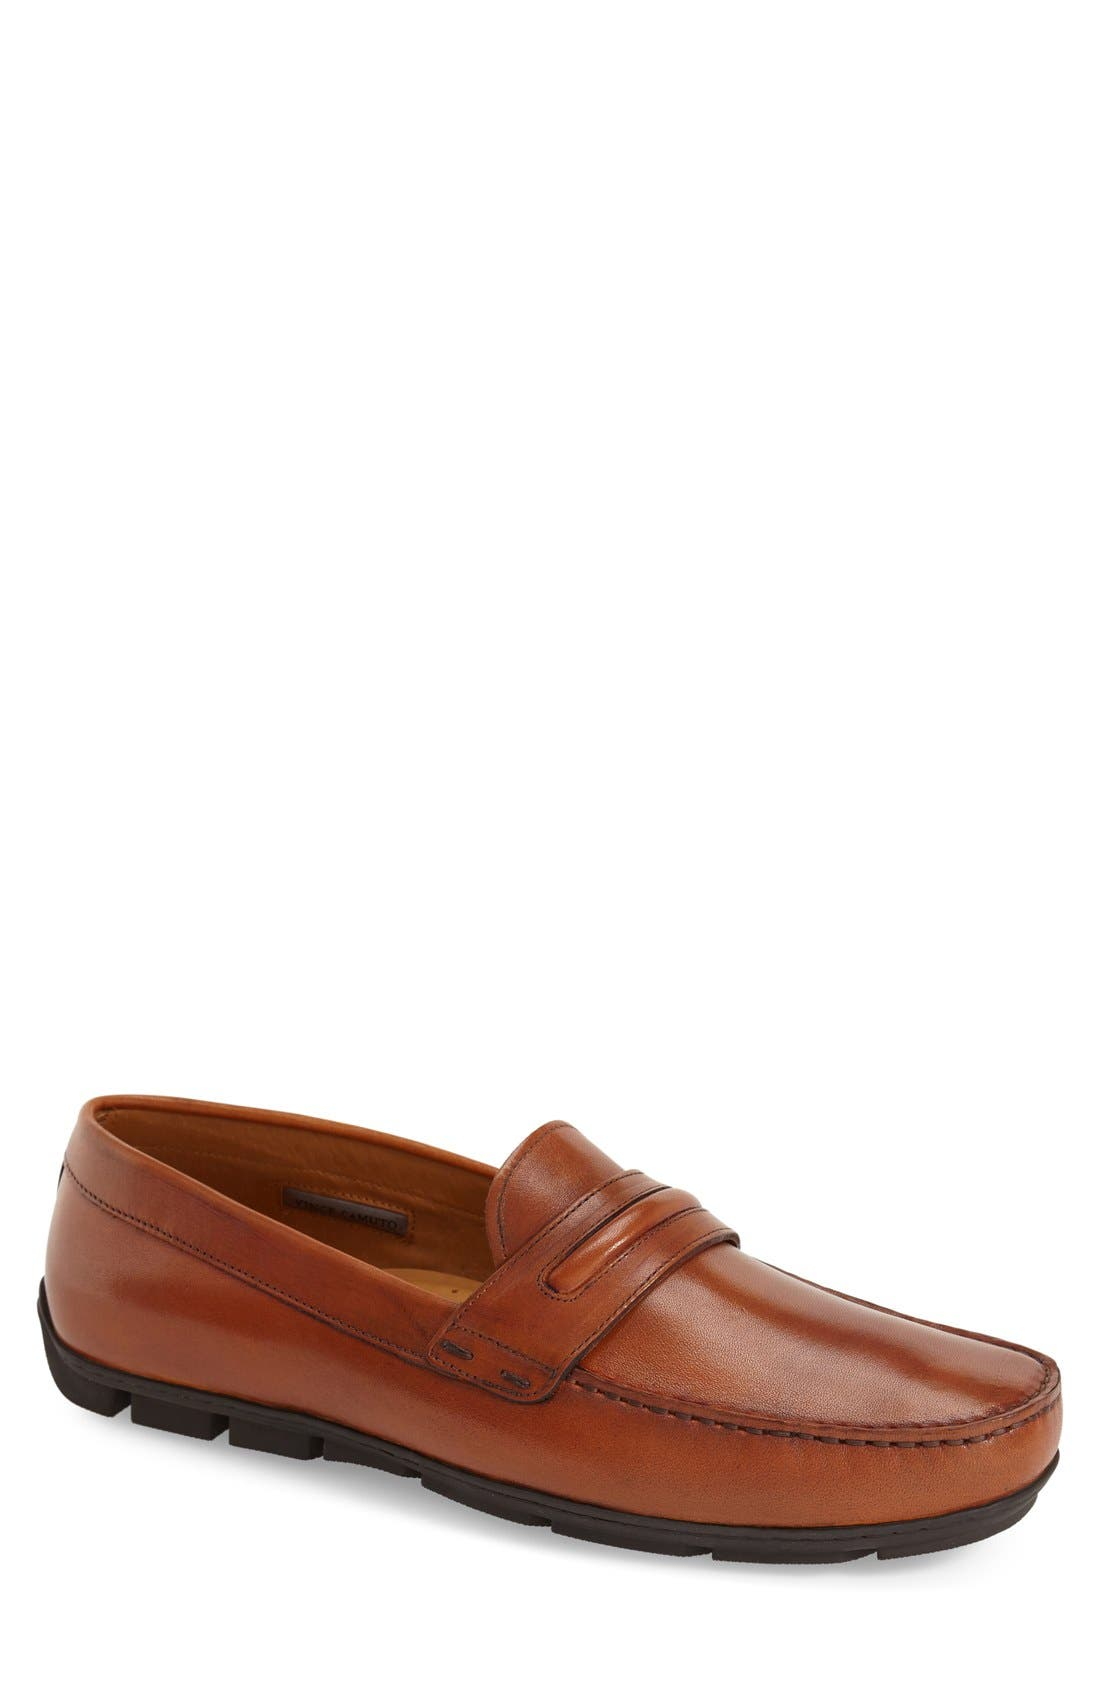 'Donte' Driving Shoe,                         Main,                         color, 240